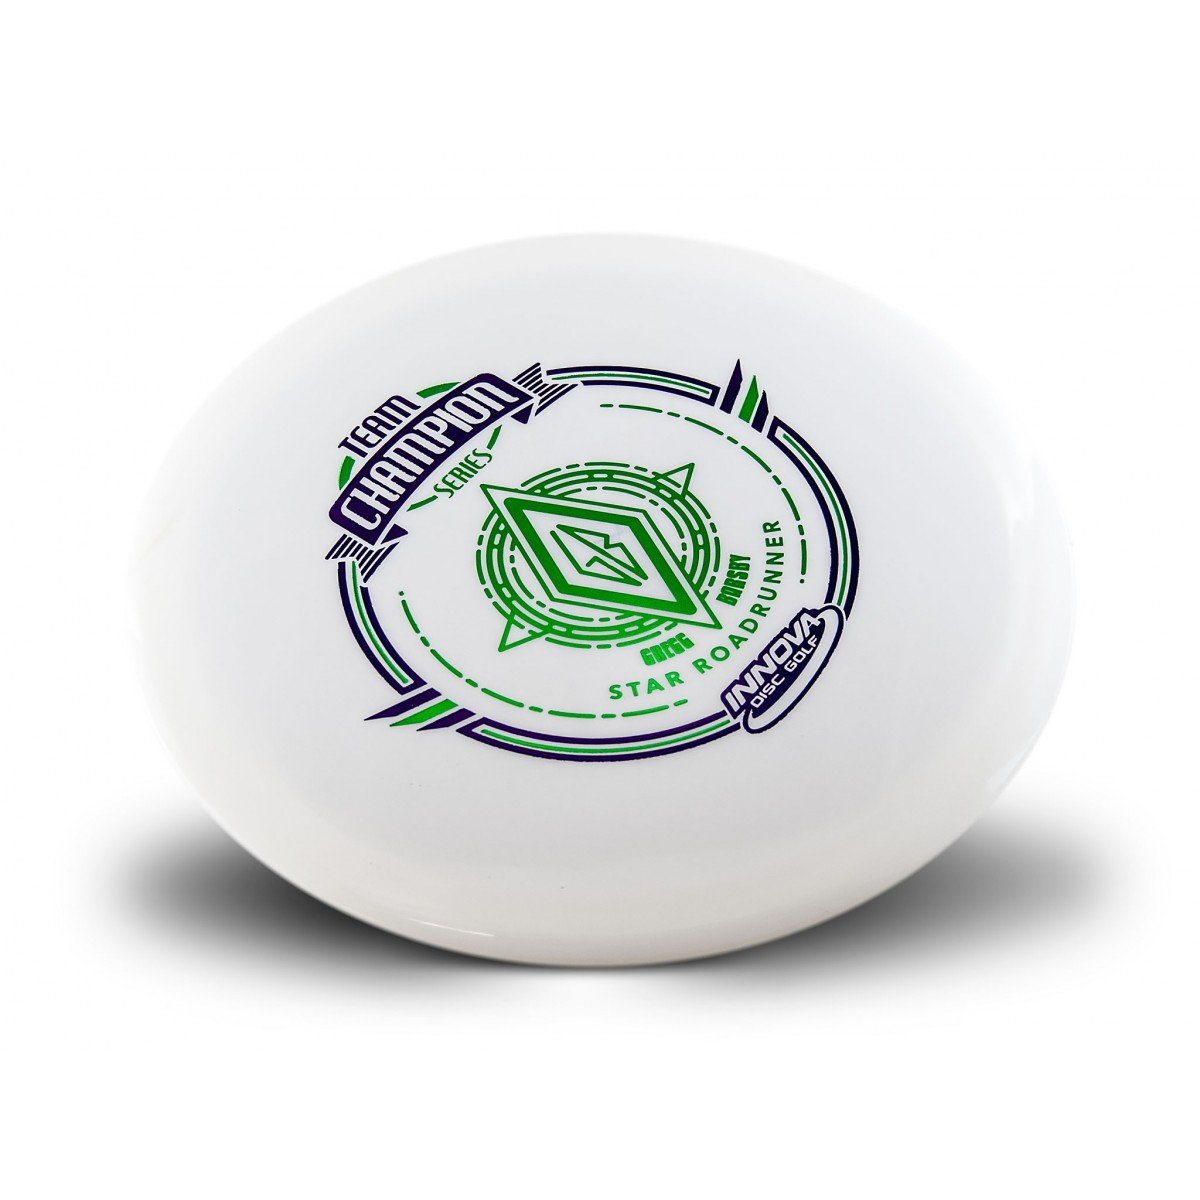 Innova Limited Edition Team Champion Tour Series Gregg Barsby Star Roadrunner Disc Golf Distance Driver (Stamp colors may vary) (White)